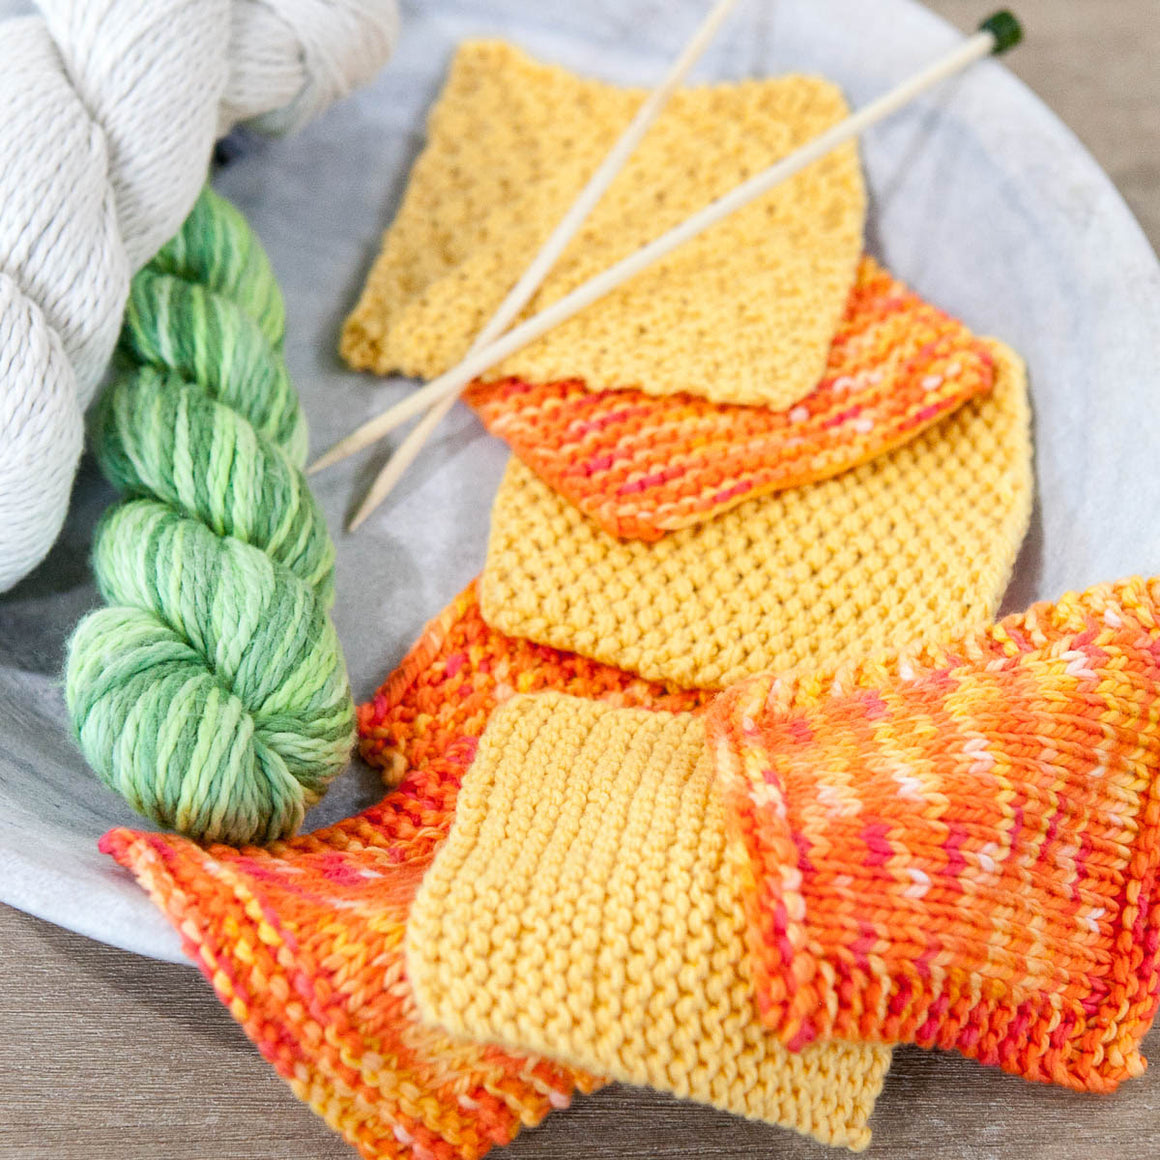 Class: Knit Express - Learn to Knit!